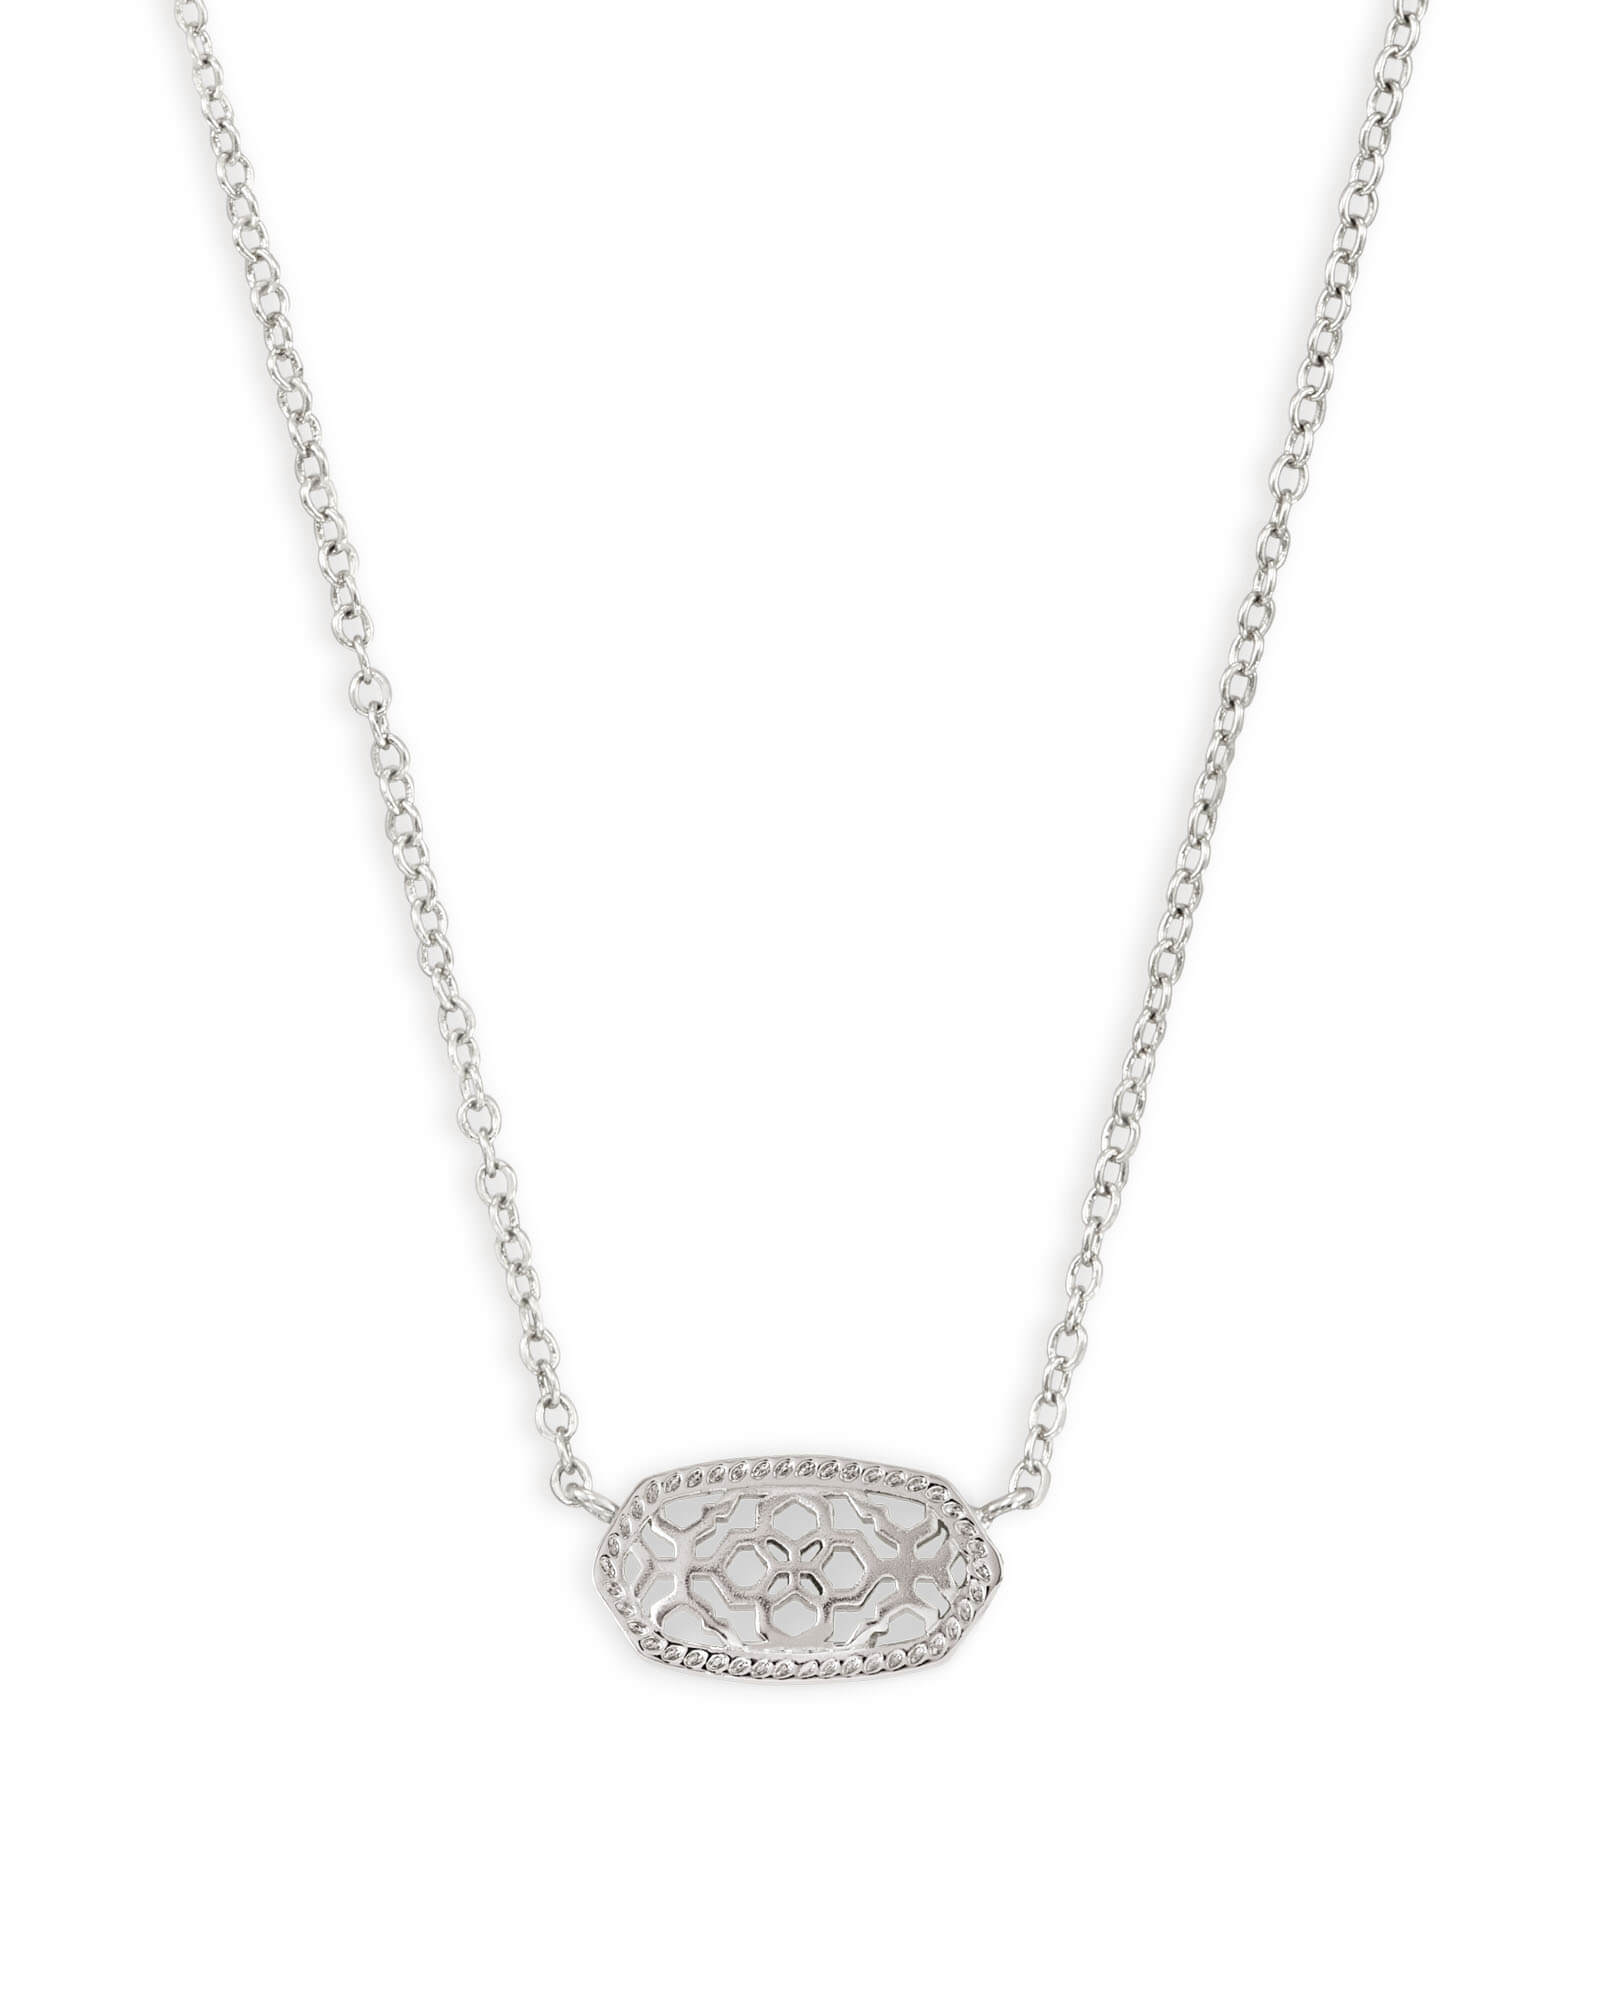 Elisa Silver Pendant Necklace in Silver Filigree